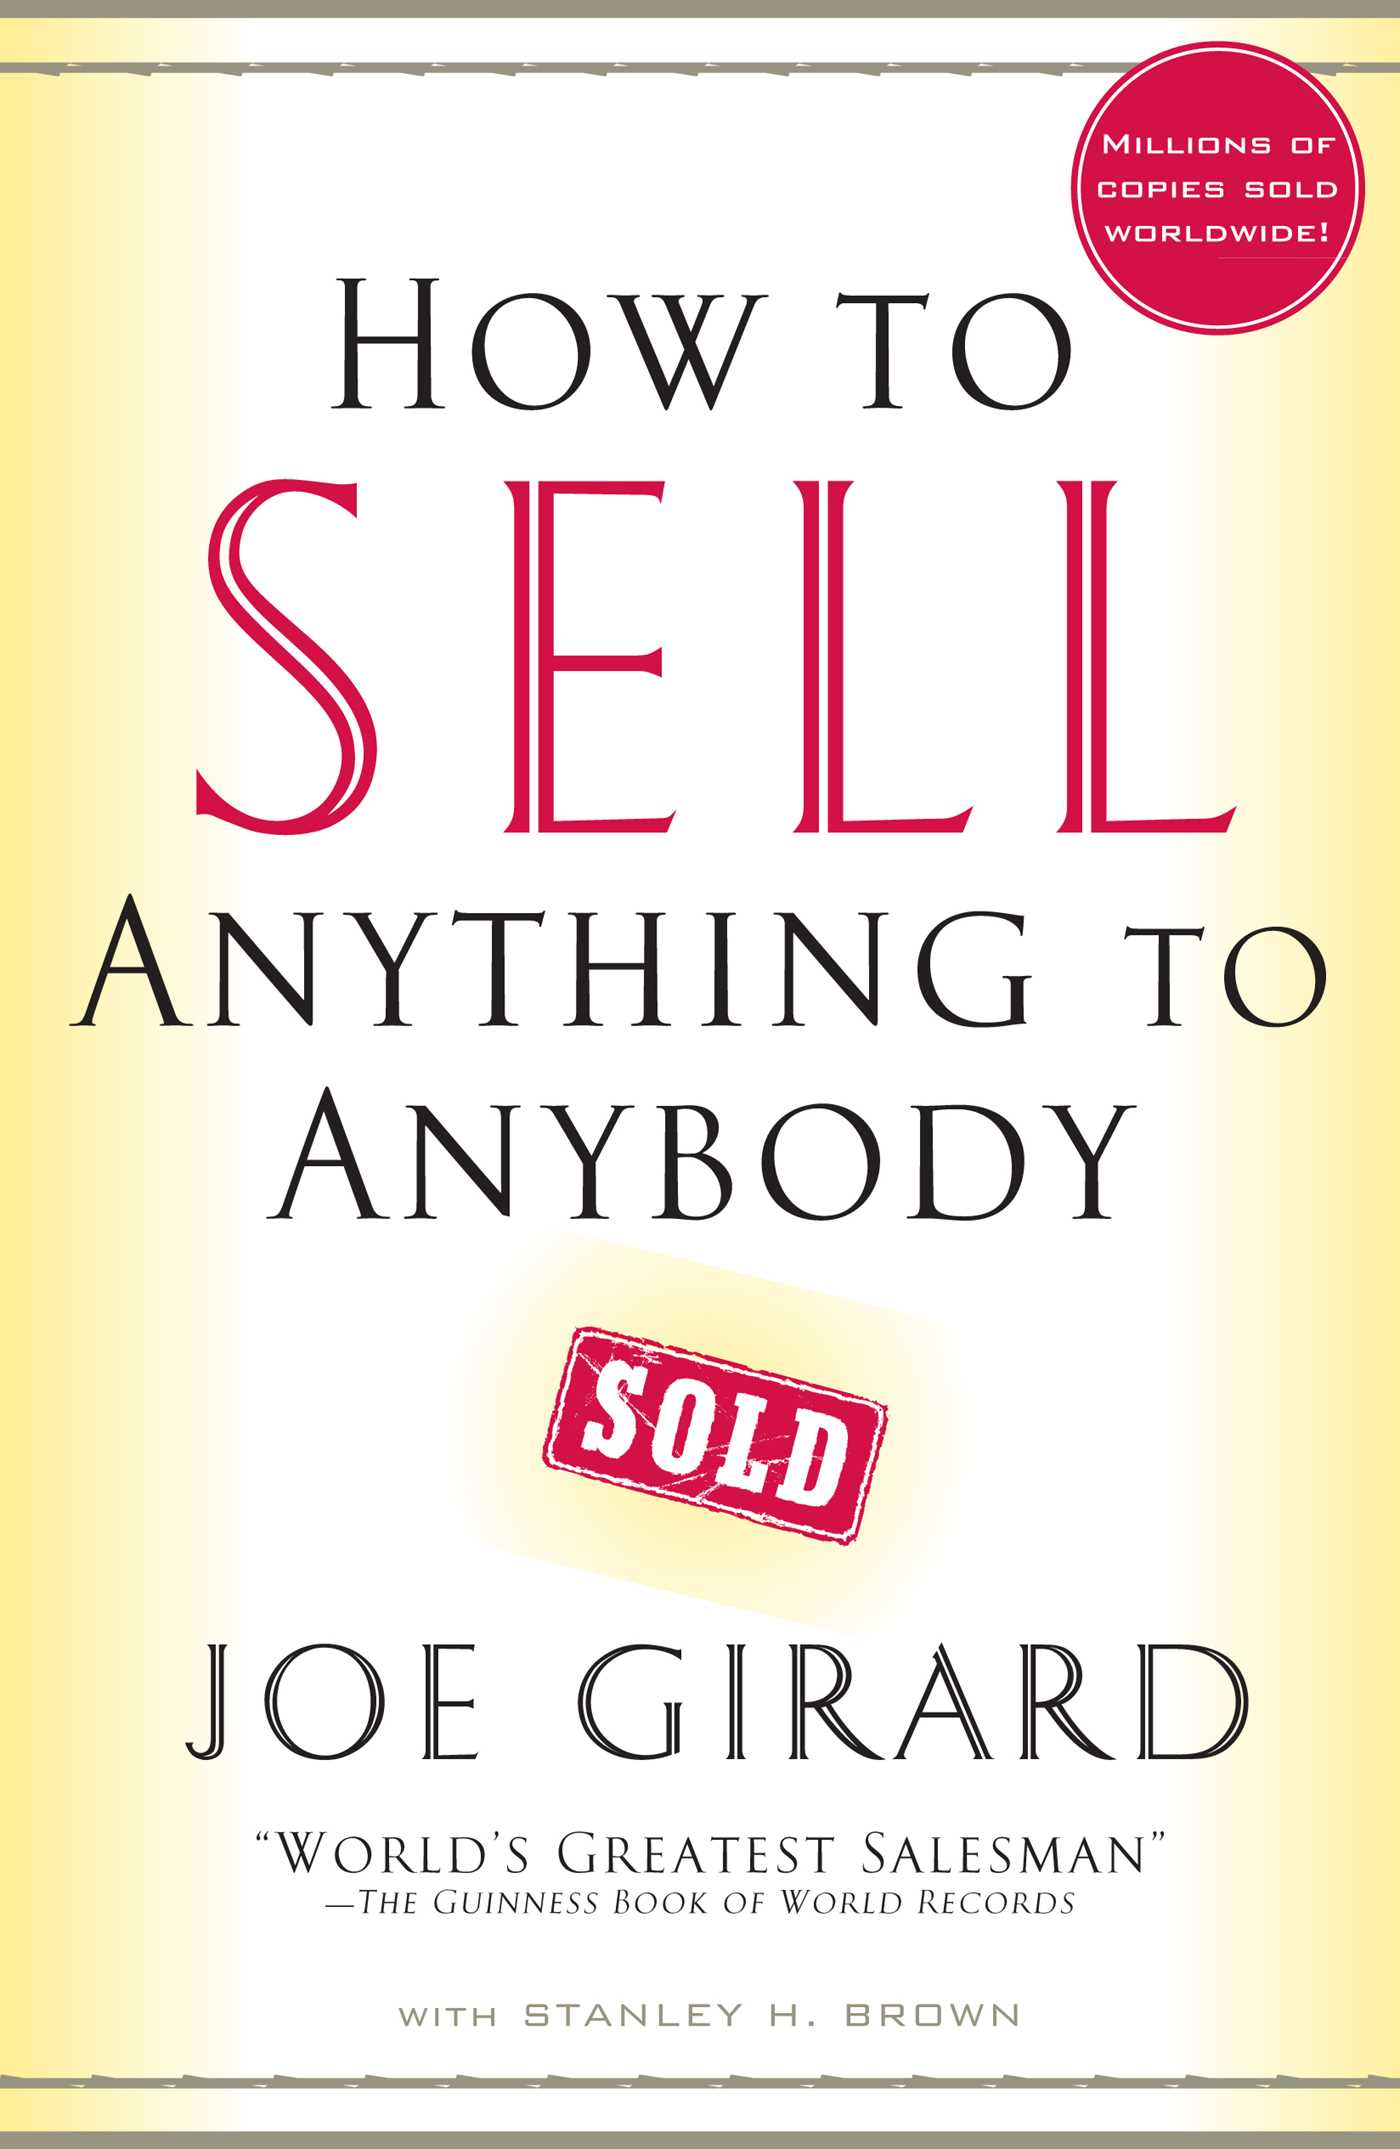 Download Ebook How to Sell Anything to Anybody by Joe Girard Pdf